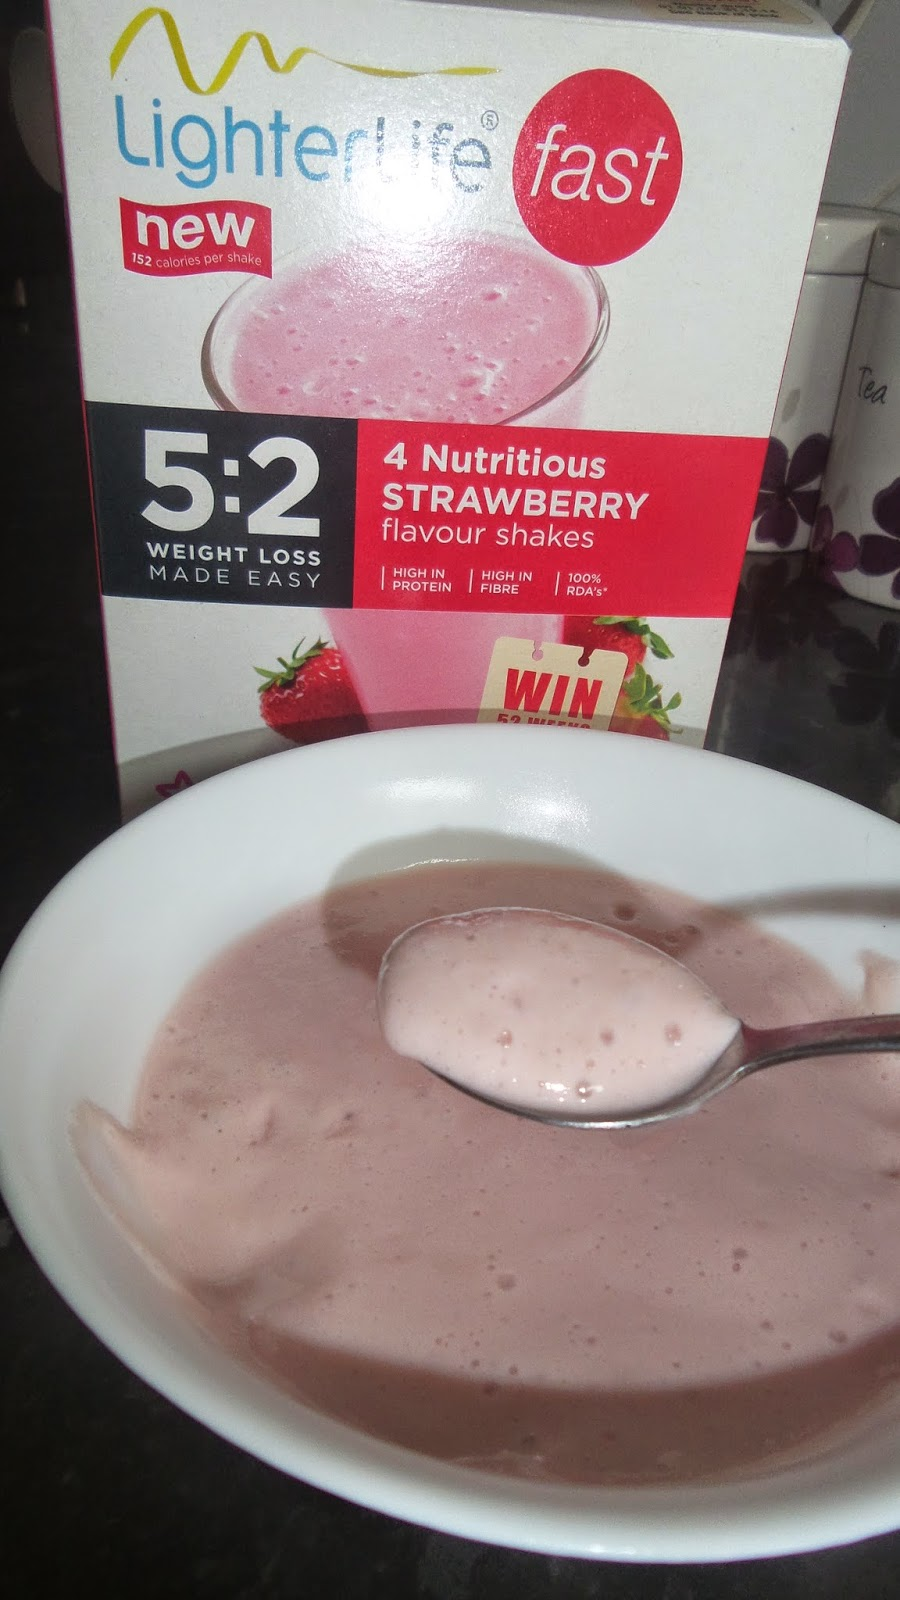 carsonsmummy review, LighterLifeFAST, meal idea, lighterlife, strawberry shake